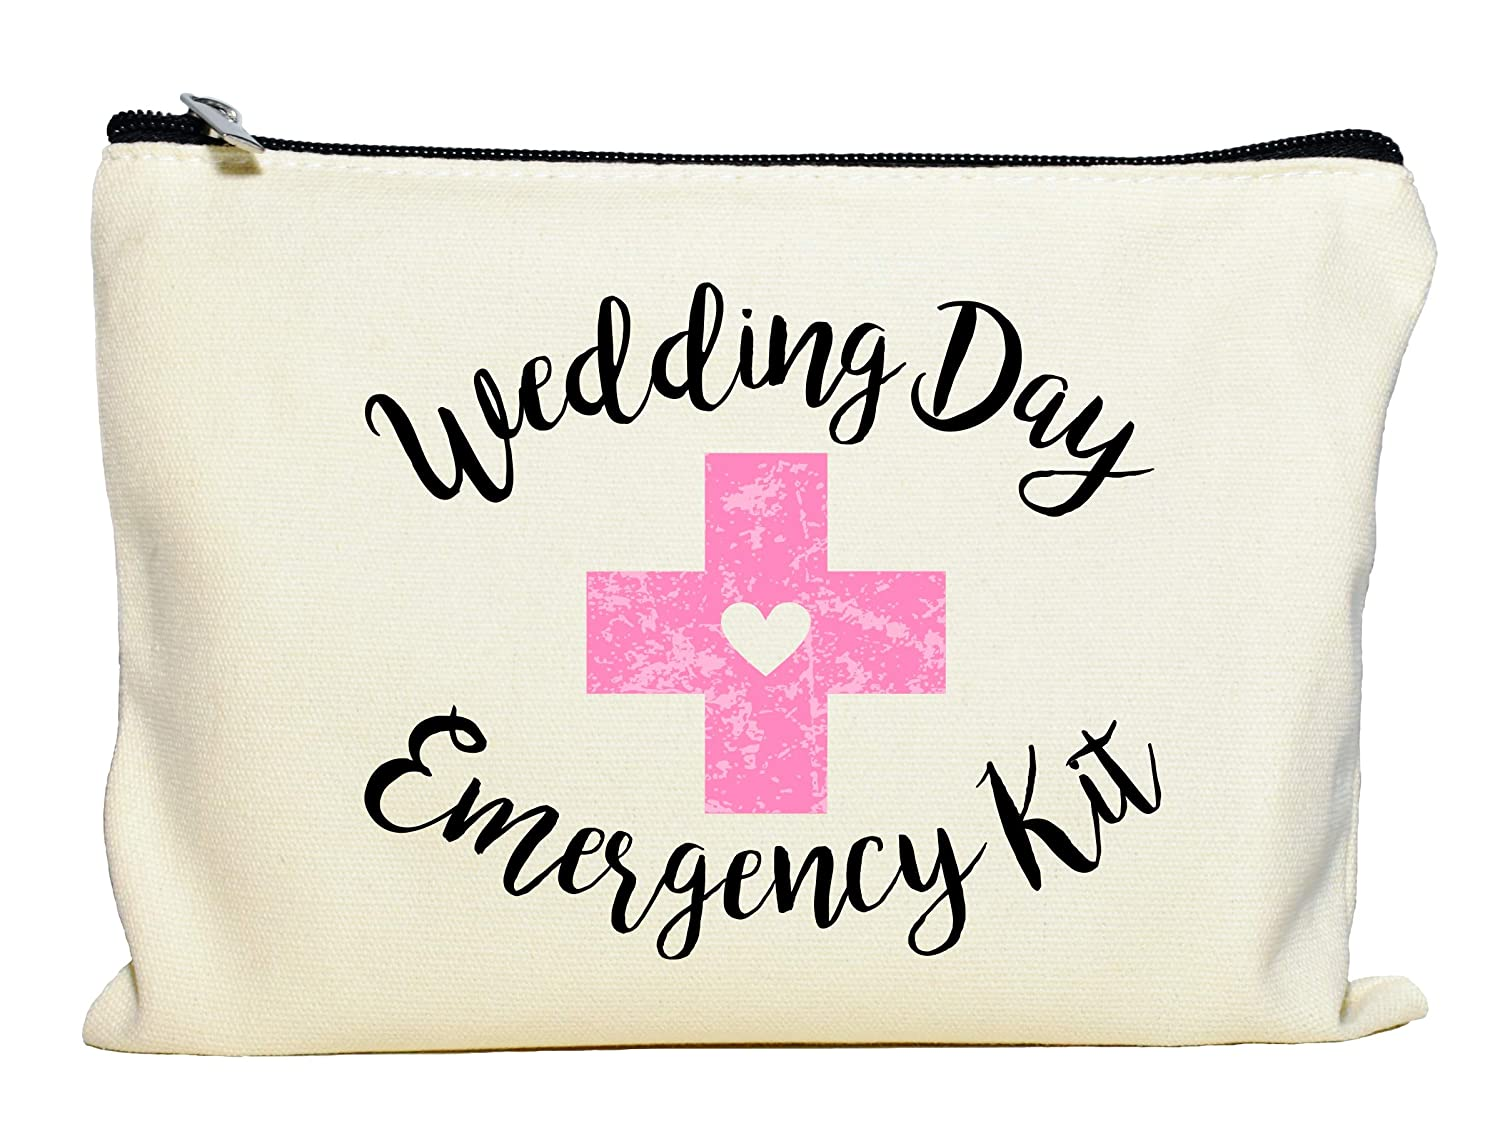 Moonwake Designs Wedding Day Emergency Kit Makeup Bag, Bridal Shower Gift, Wedding Survival Kit, Cosmetic Bag